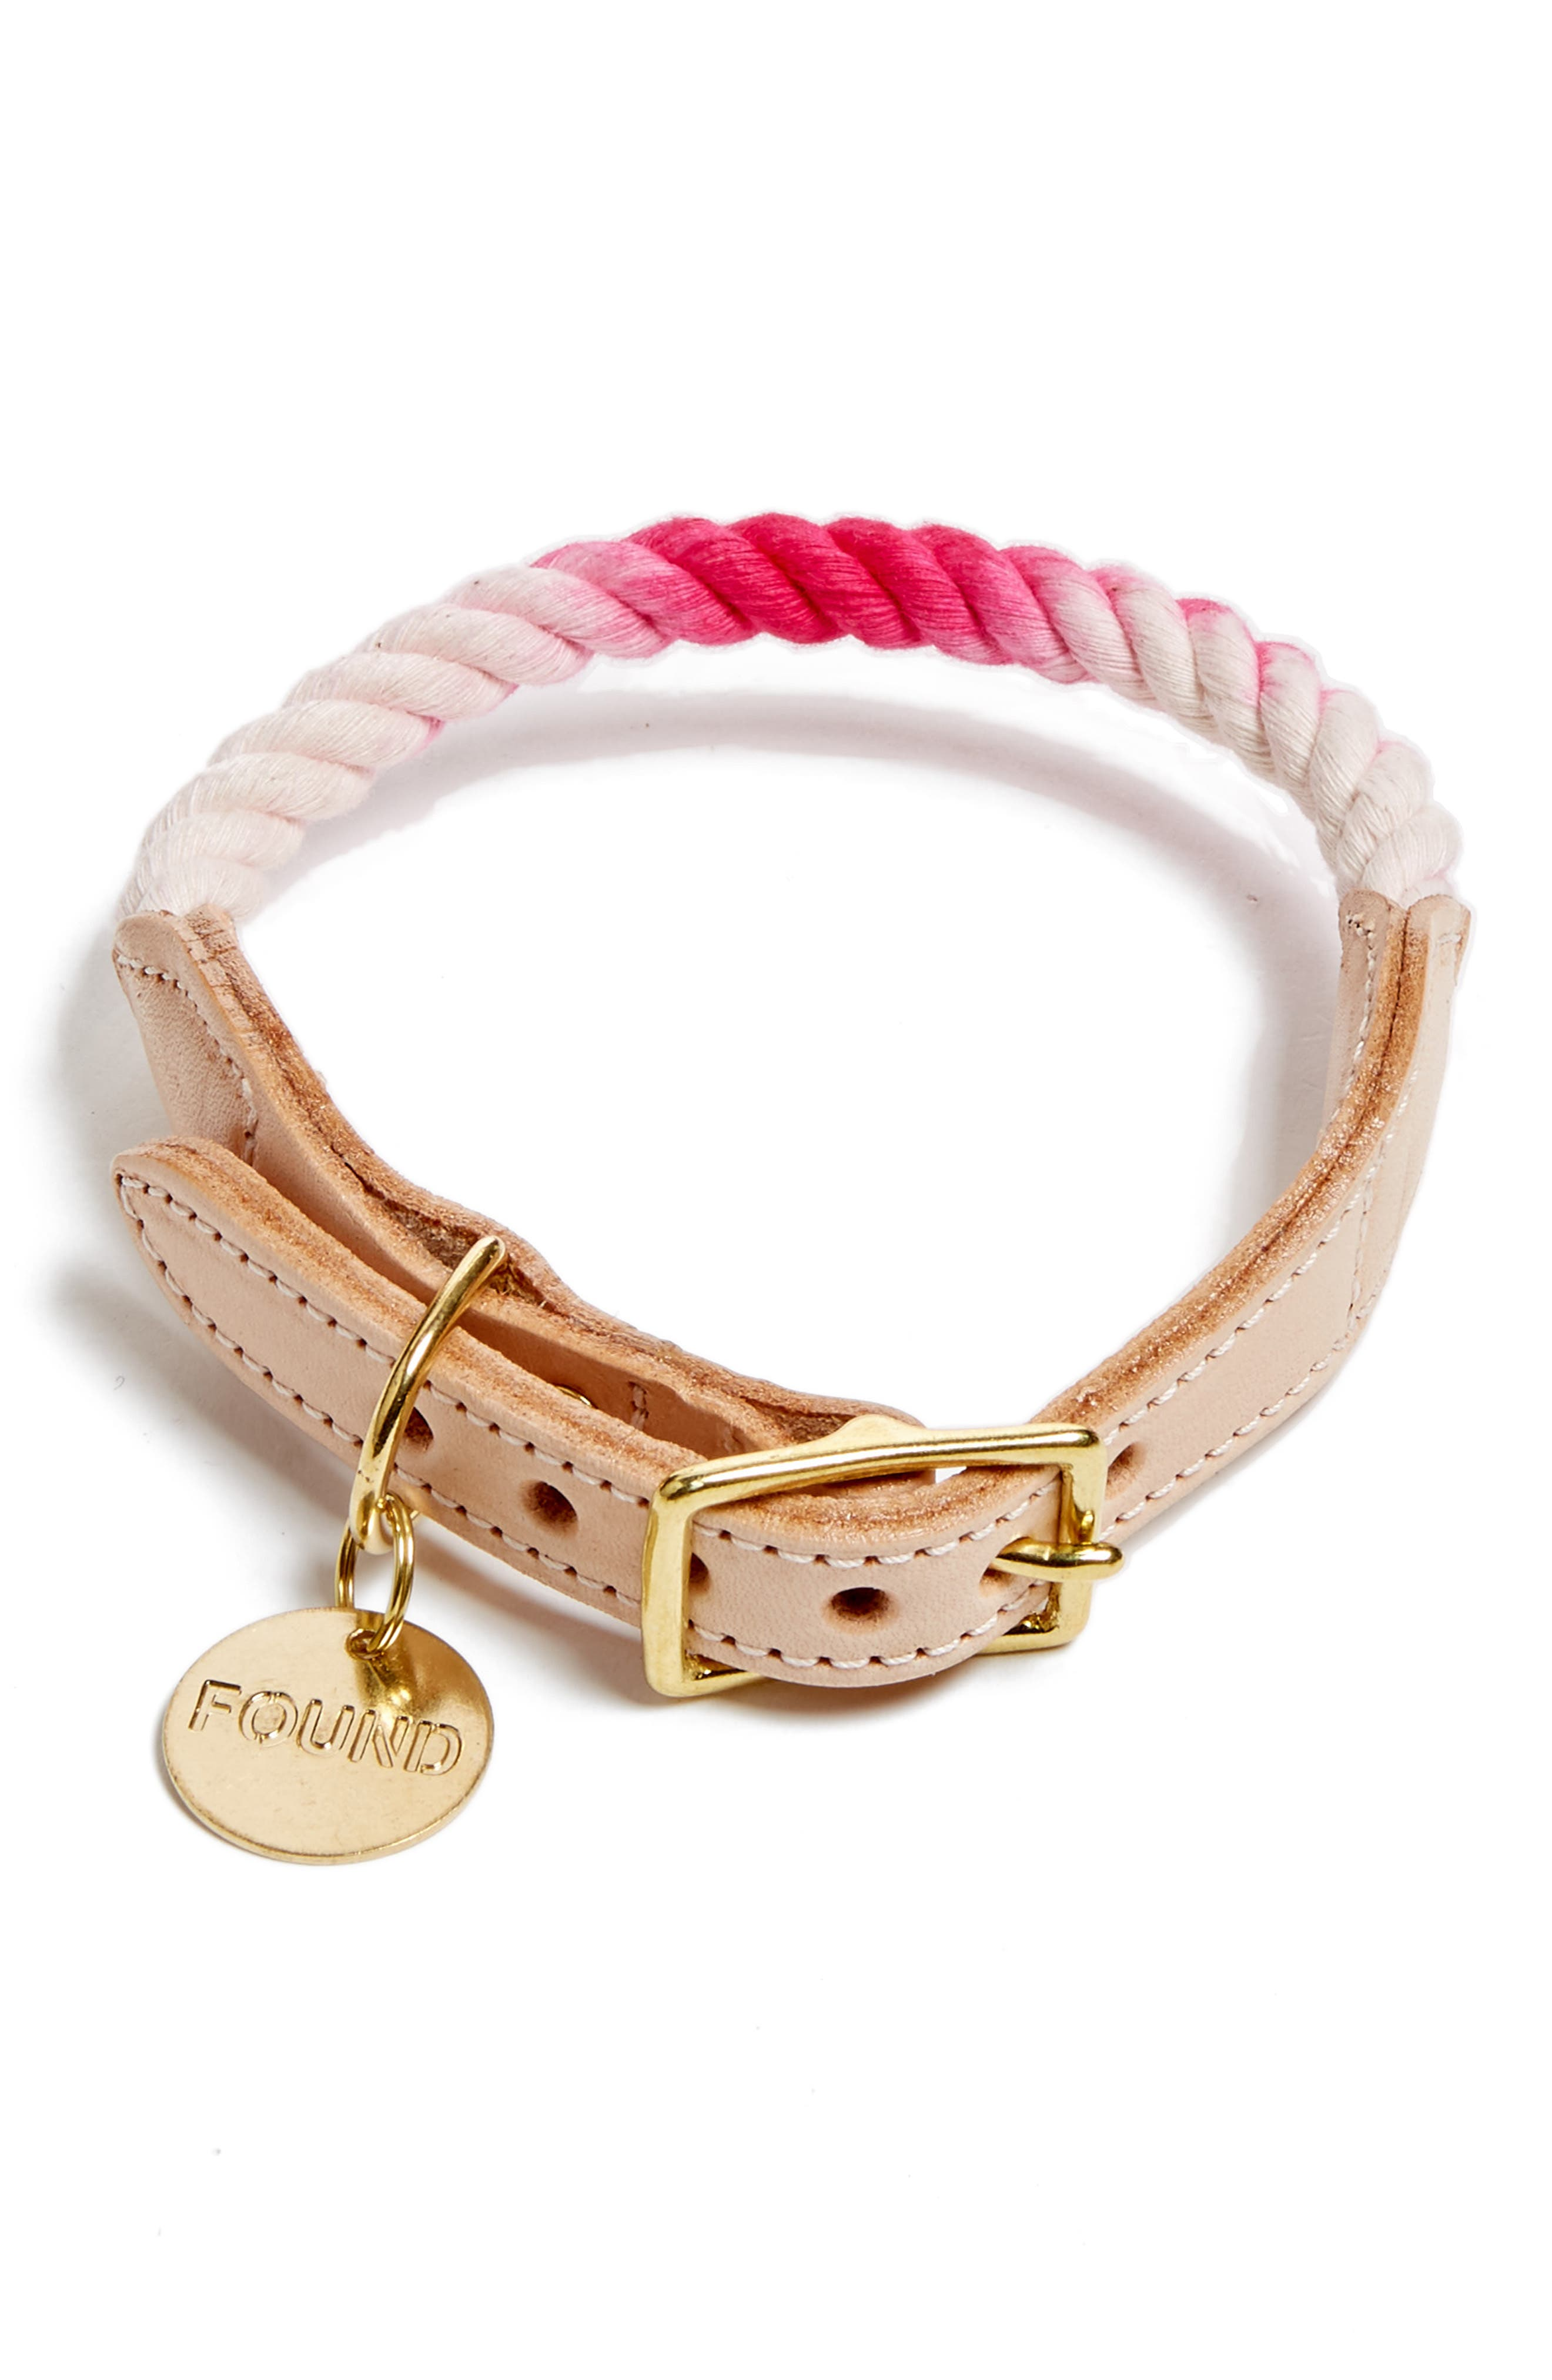 Rope & Leather Pet Collar,                             Main thumbnail 1, color,                             Magenta Ombre